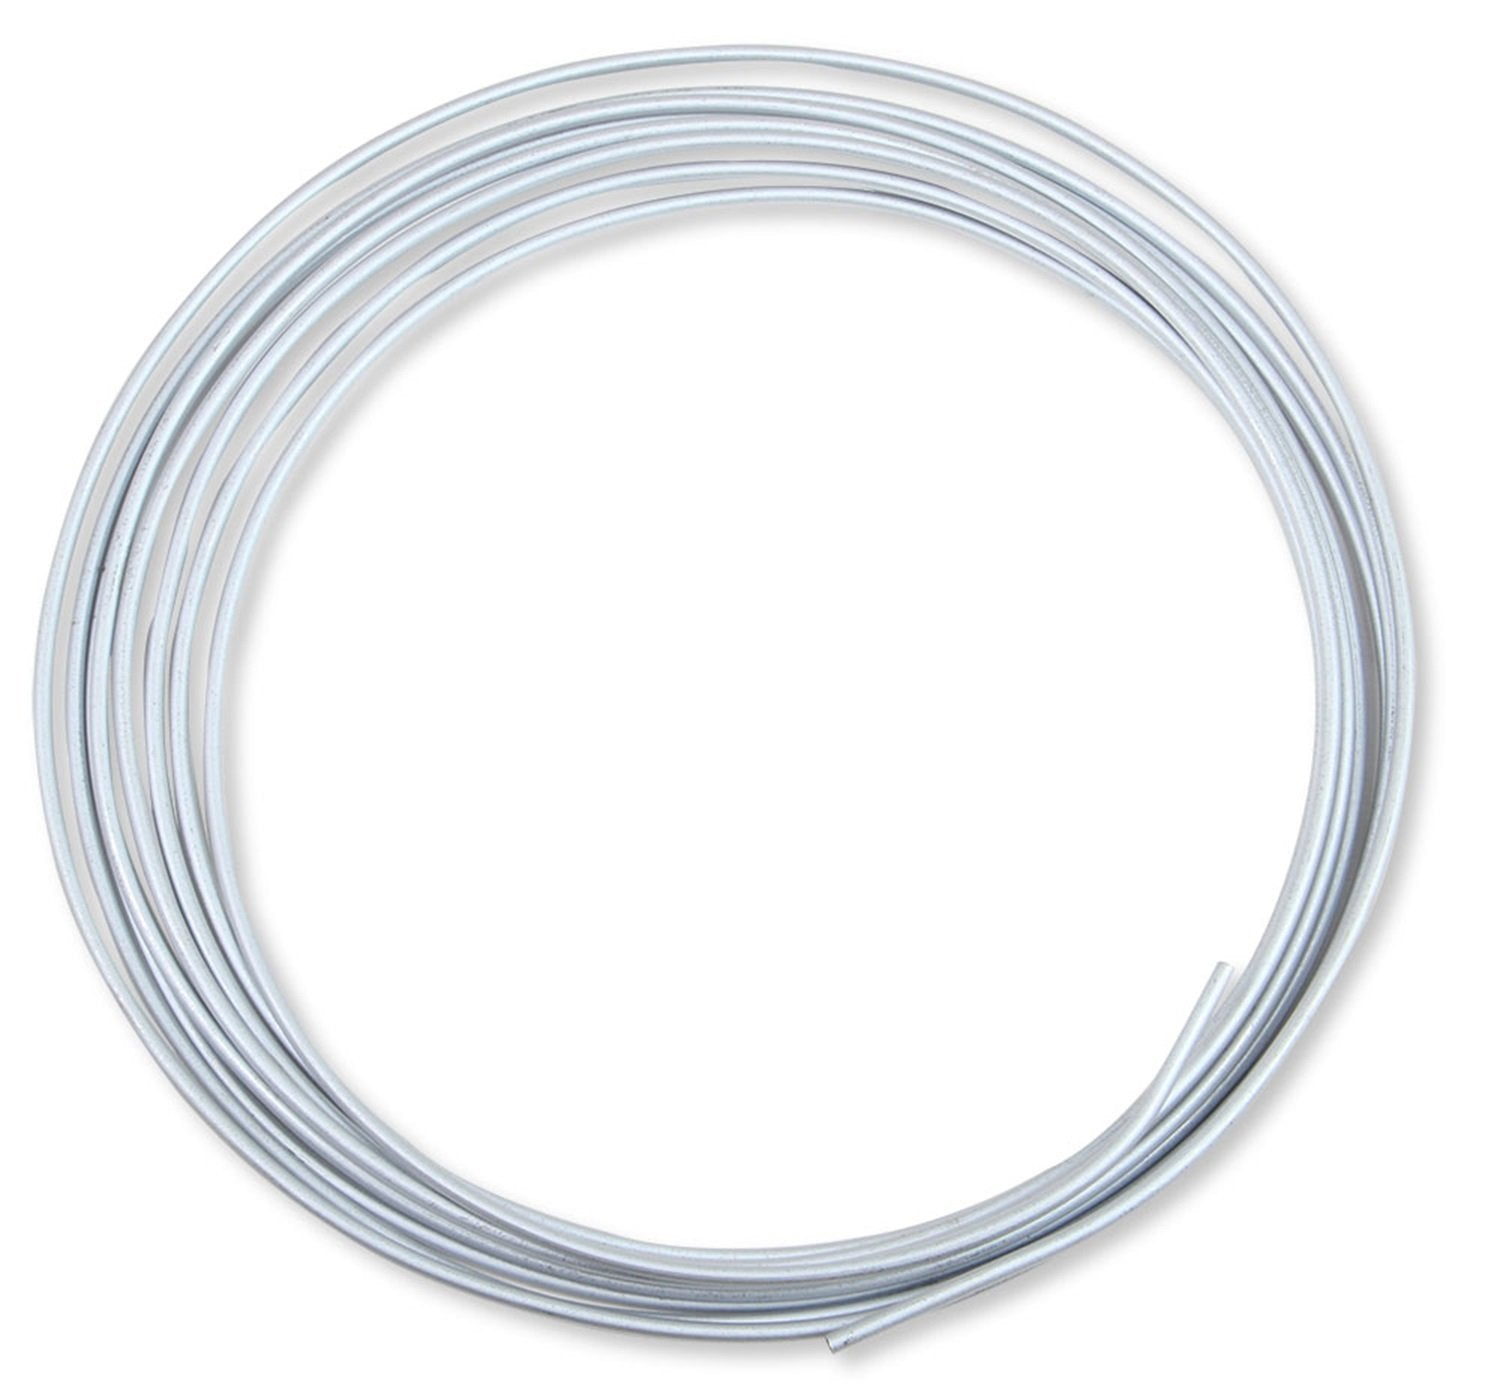 Zinc 3//8 X 25 Earls ZC6616KERL Coil and Fitting Kit